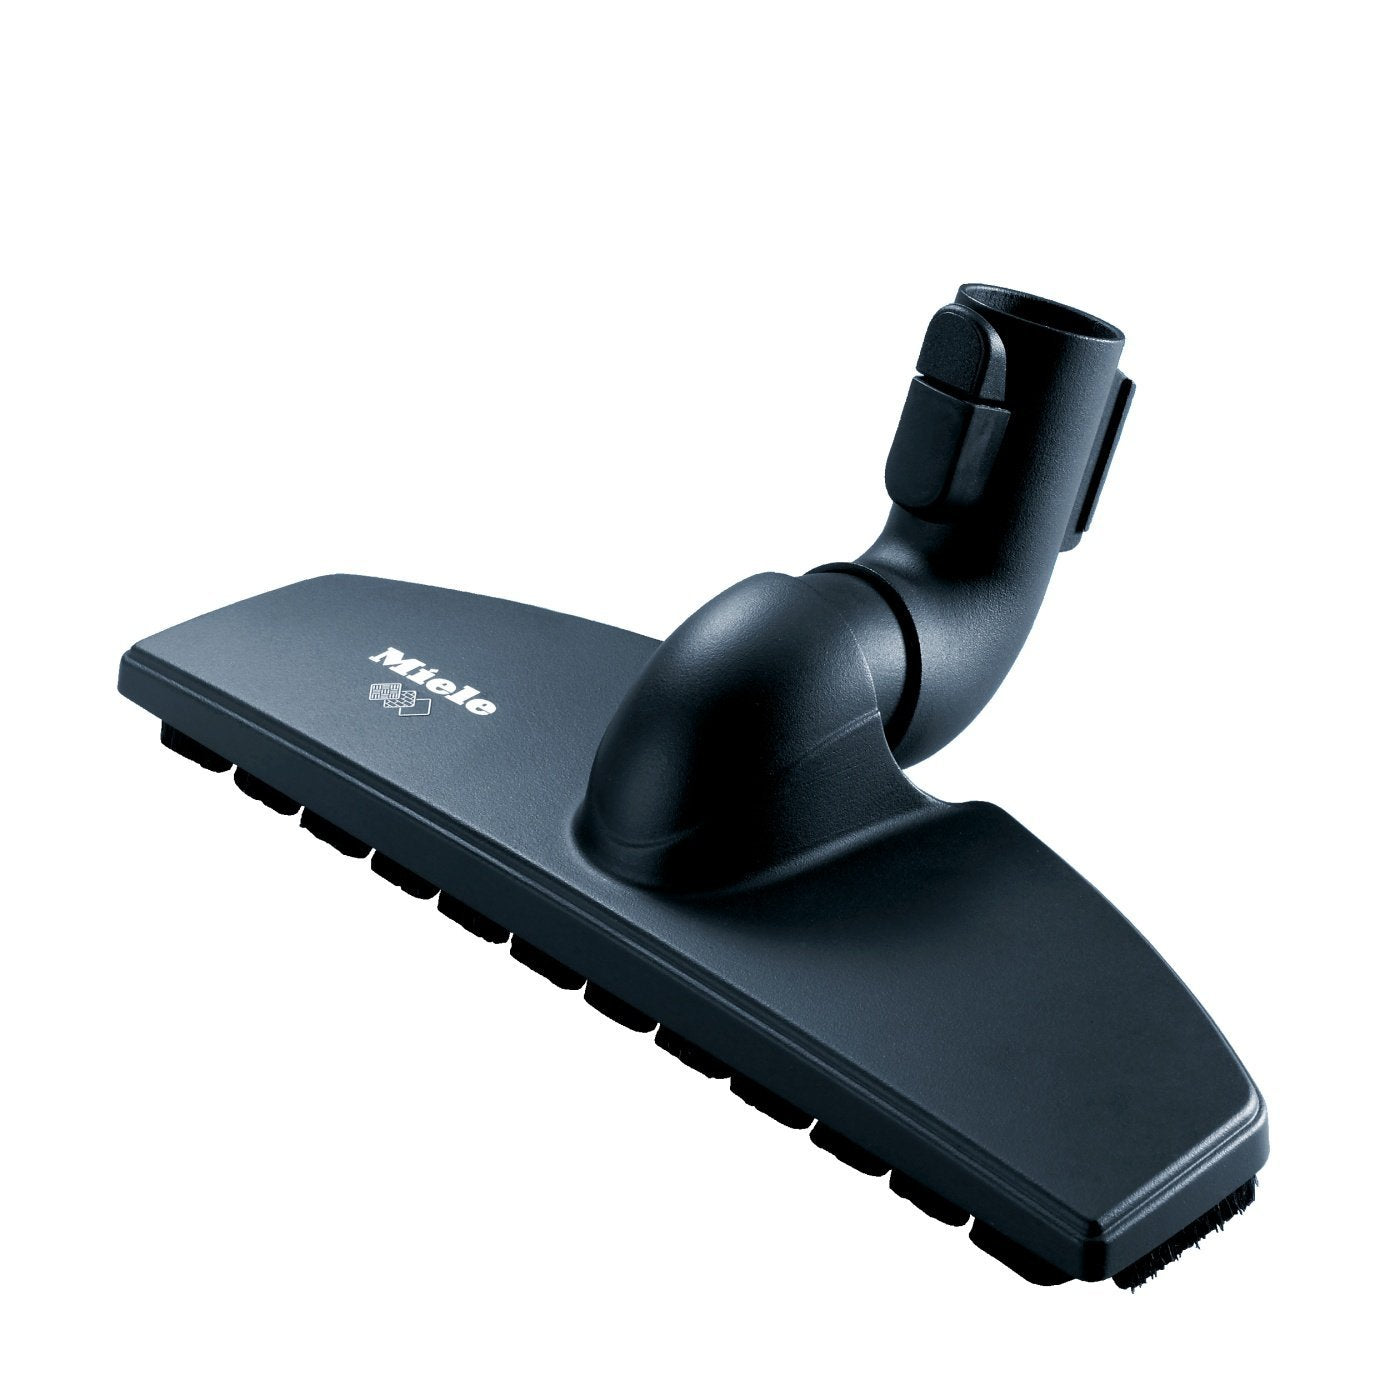 Miele SBB 300 Smooth Floor Brush